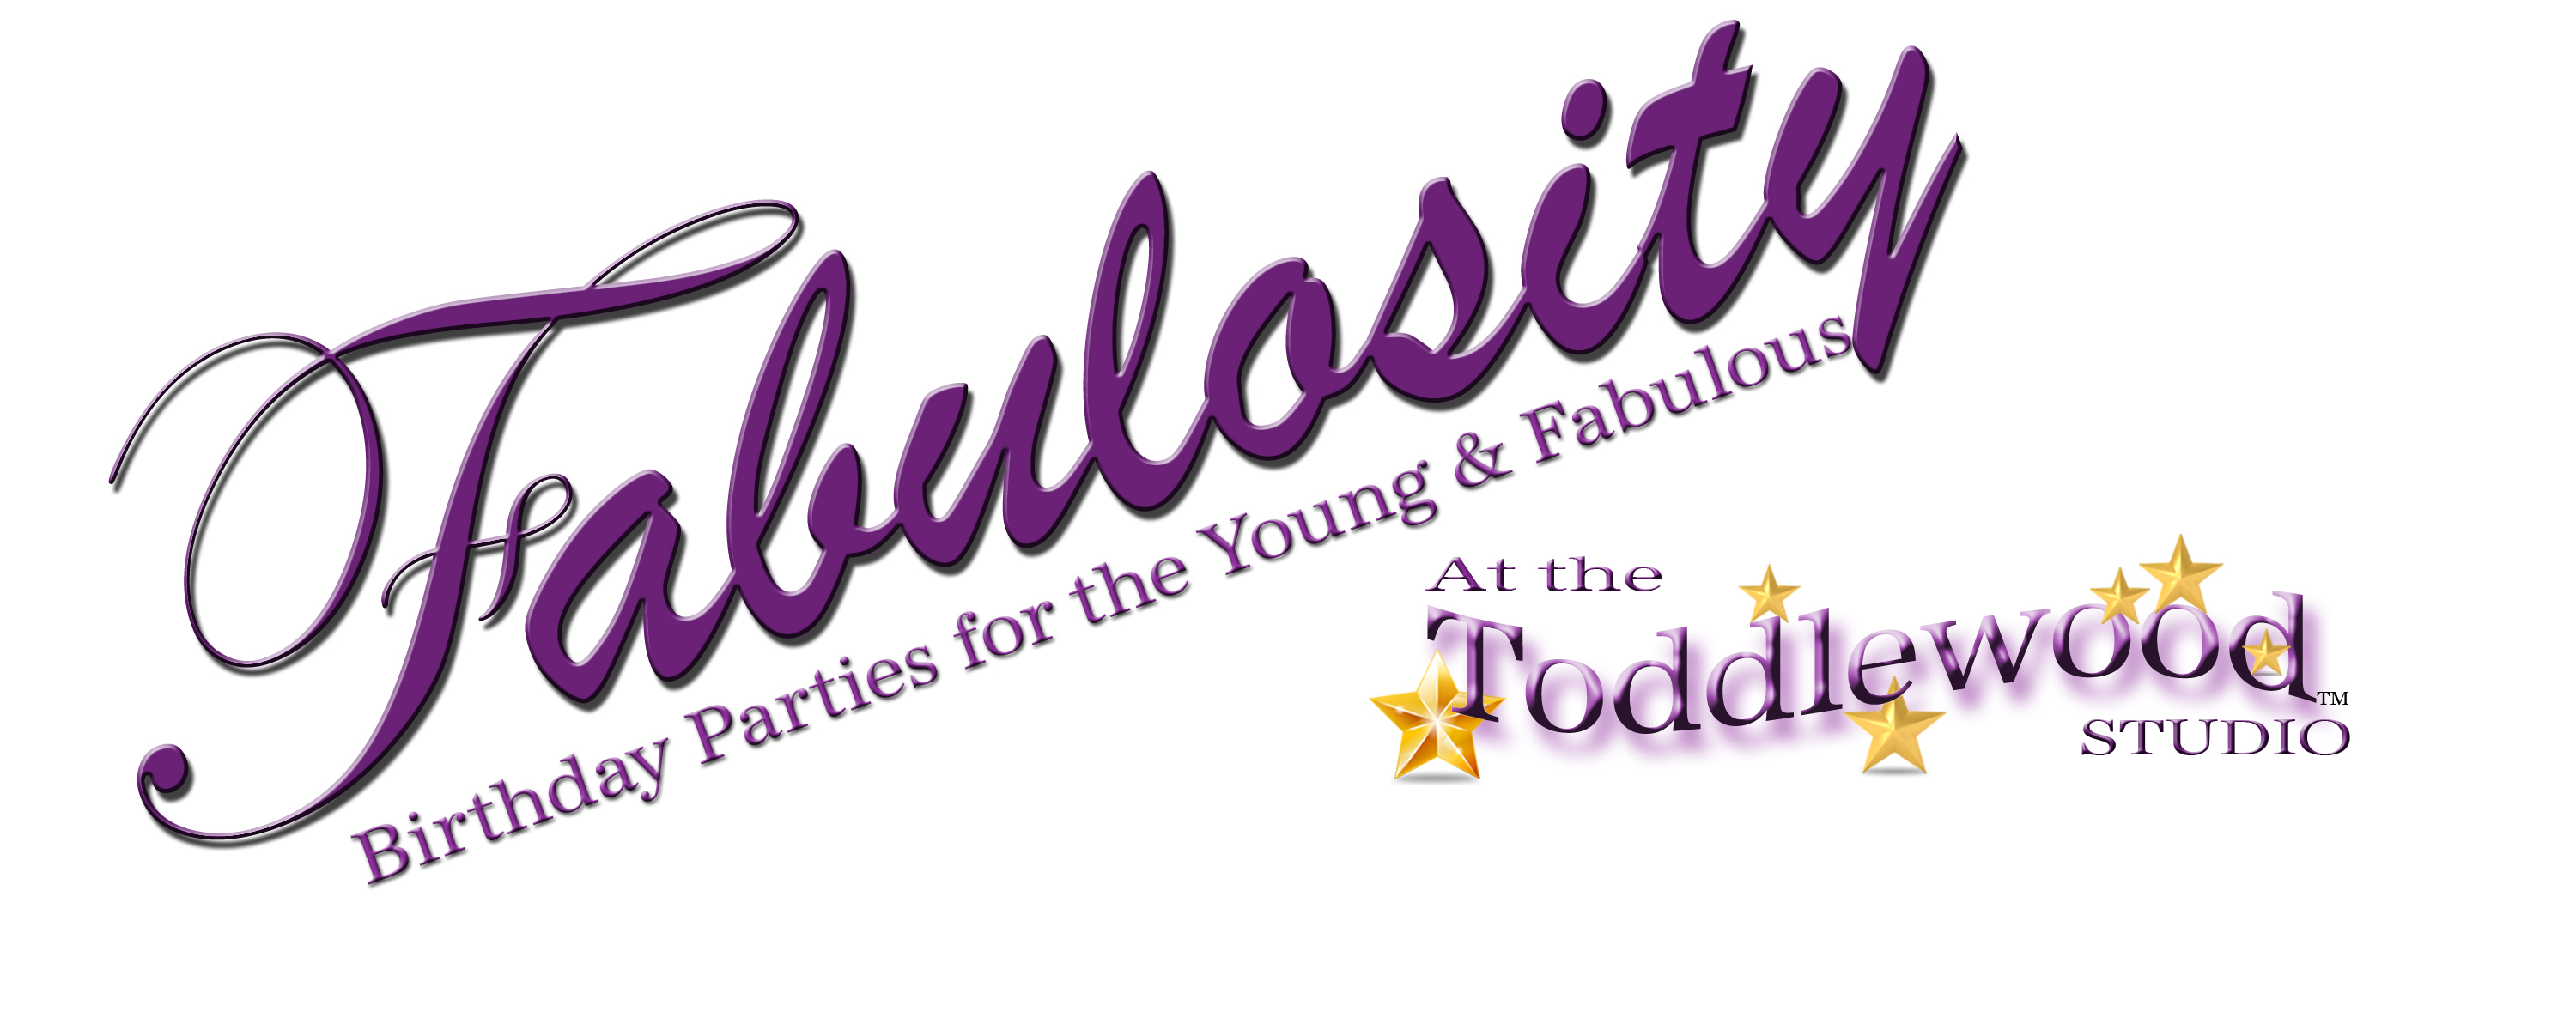 Toddlewood Studios Birthday Parties